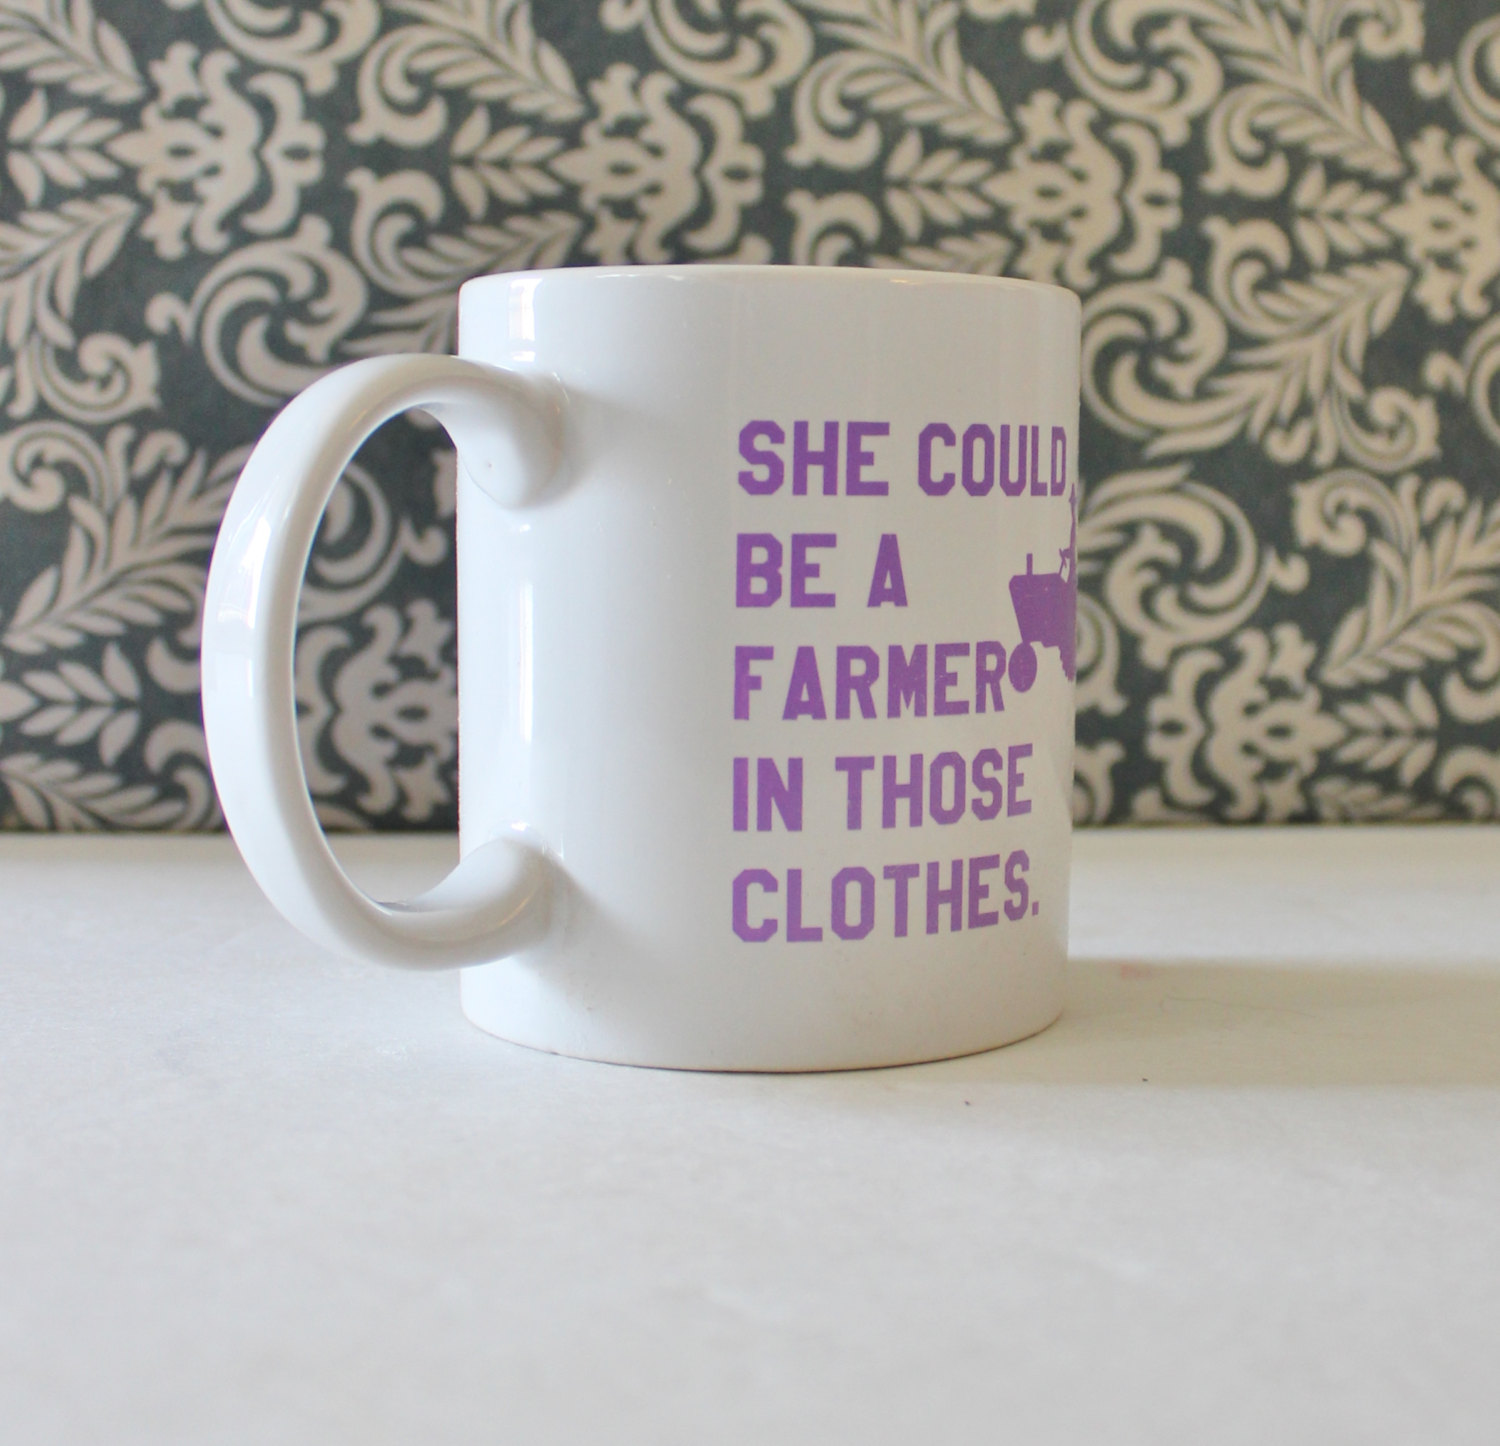 She Could Be A Farmer In Those Clothes Clueless Movie Inspired Coffee Cup Mug Pencil Holder Catch All Ready To Ship The Silver Spider Print Shop Online Store Powered By Storenvy